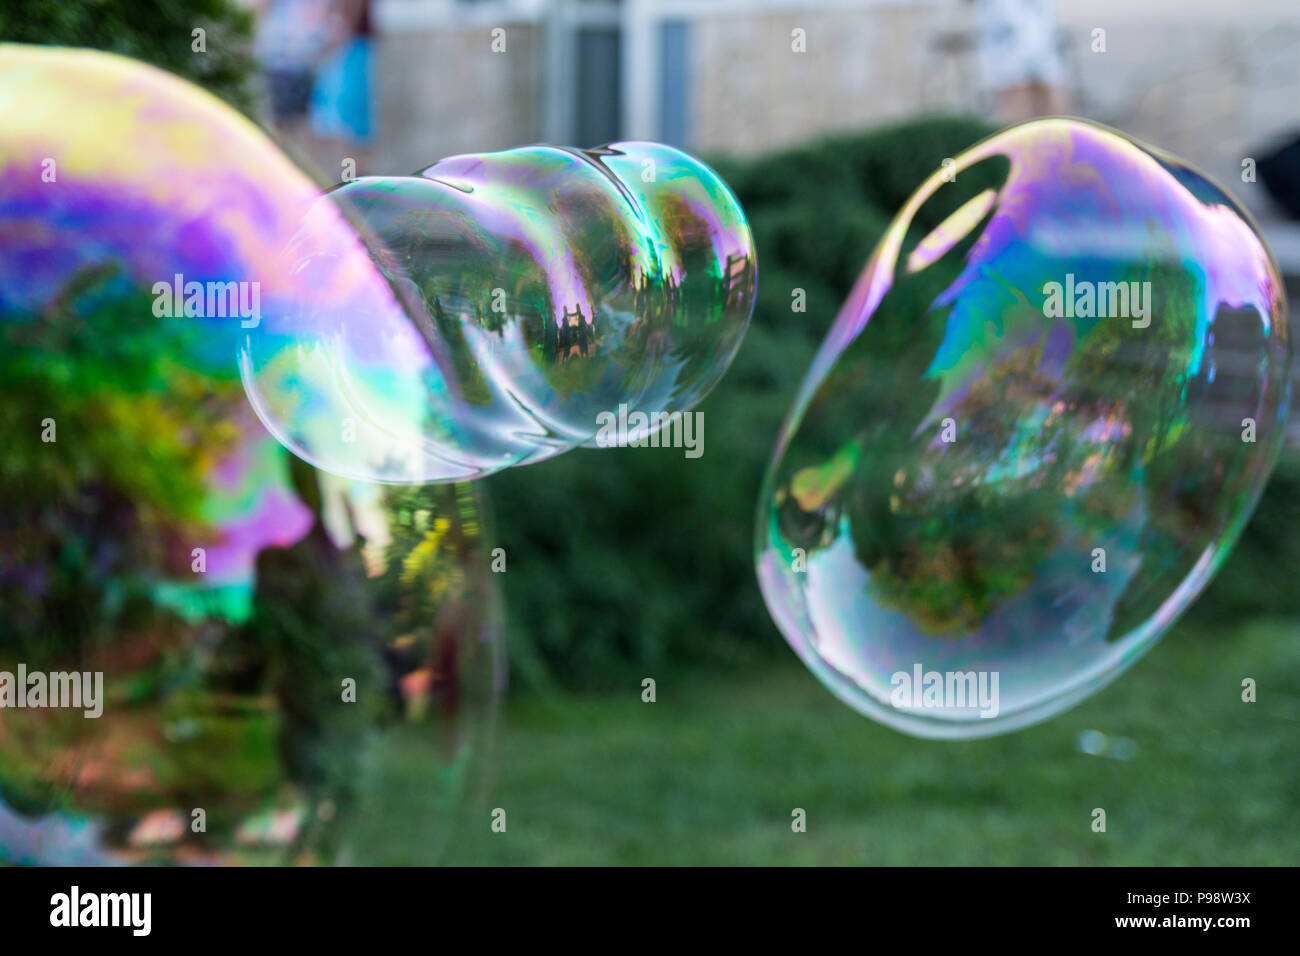 big soap bubbles in the garden - Stock Image